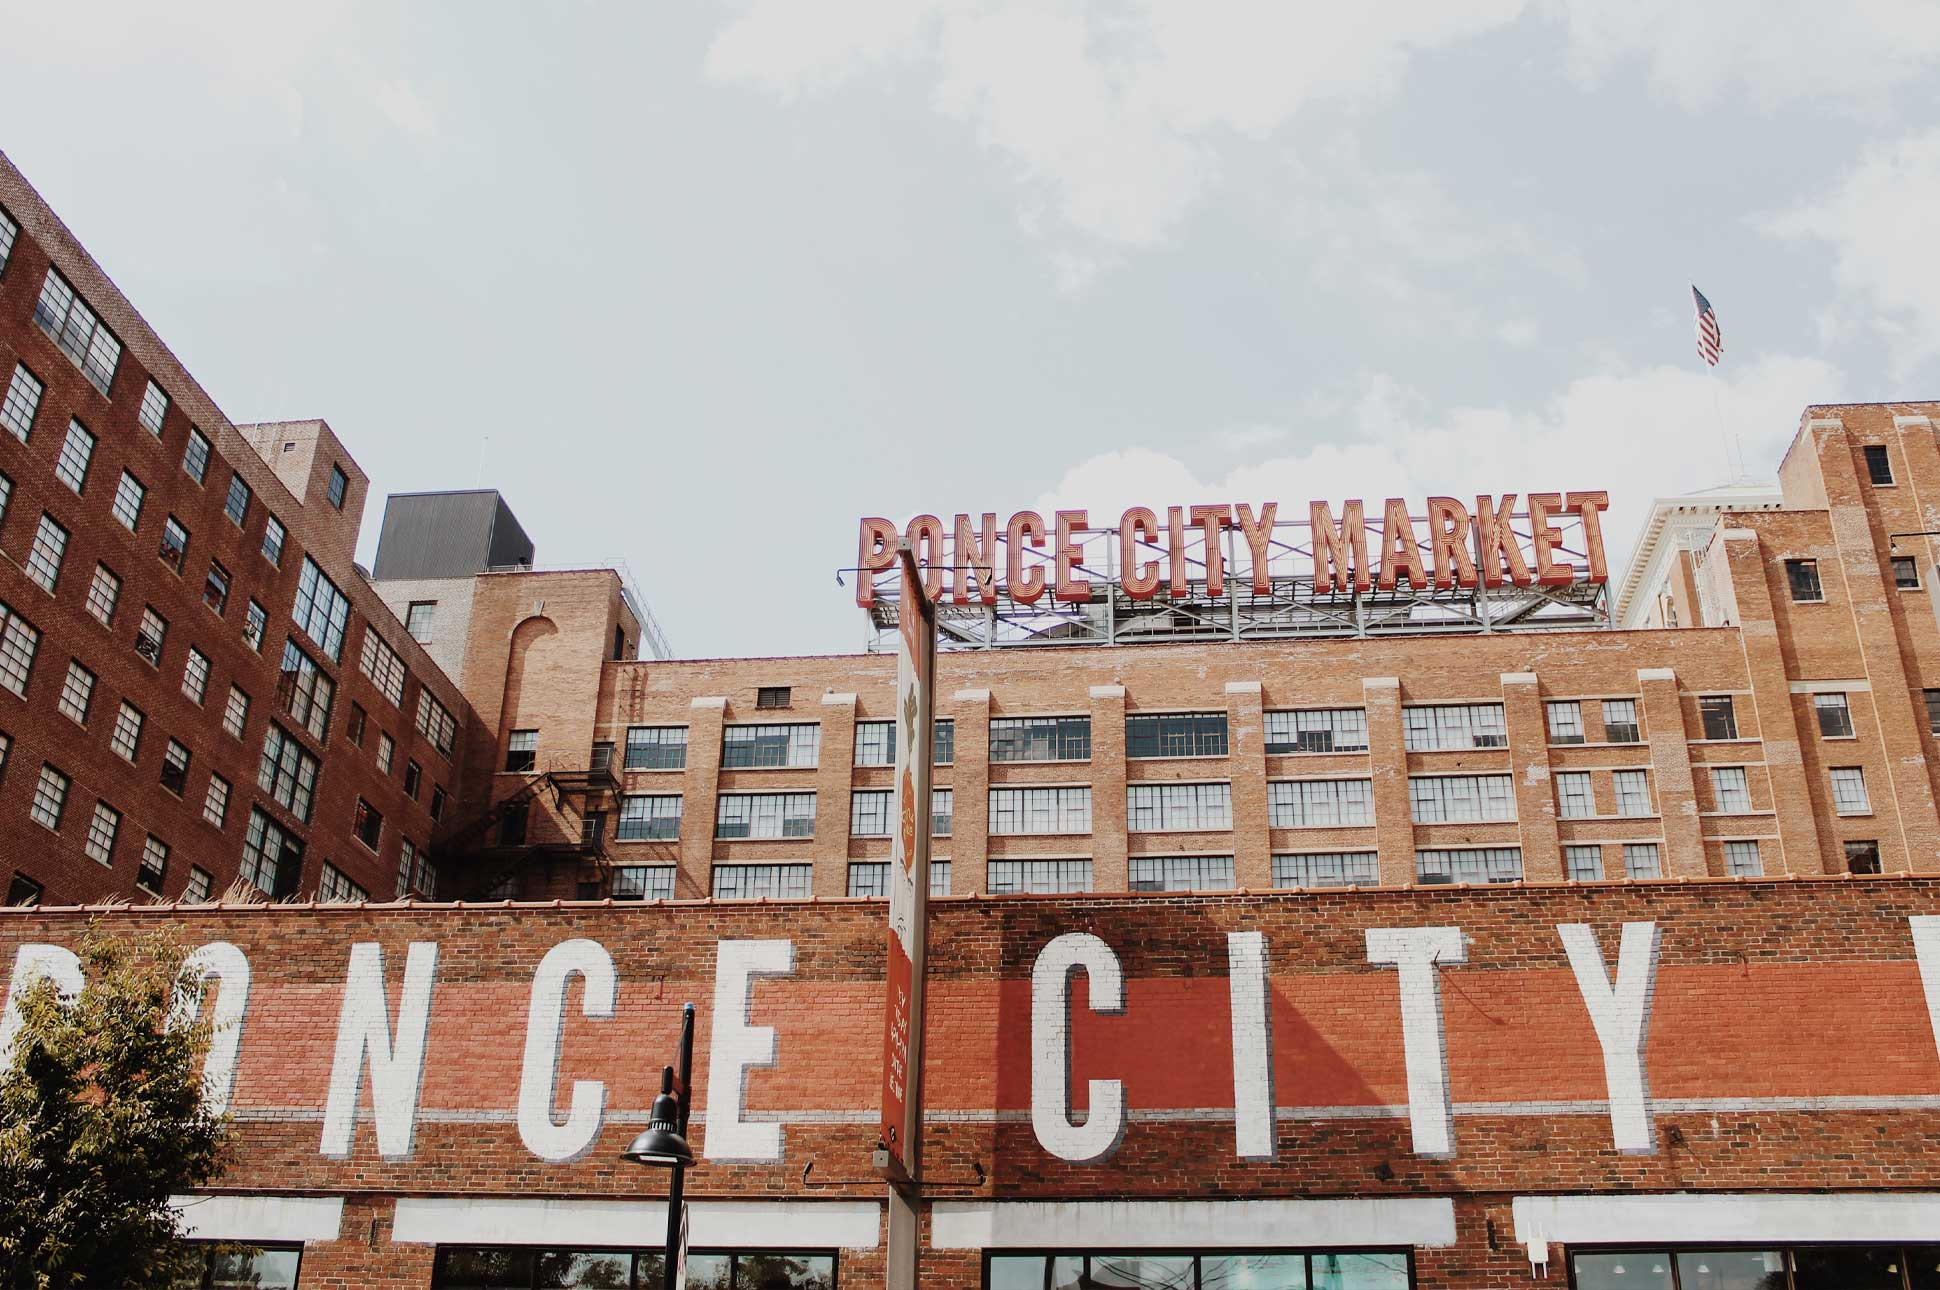 ponce market buildings